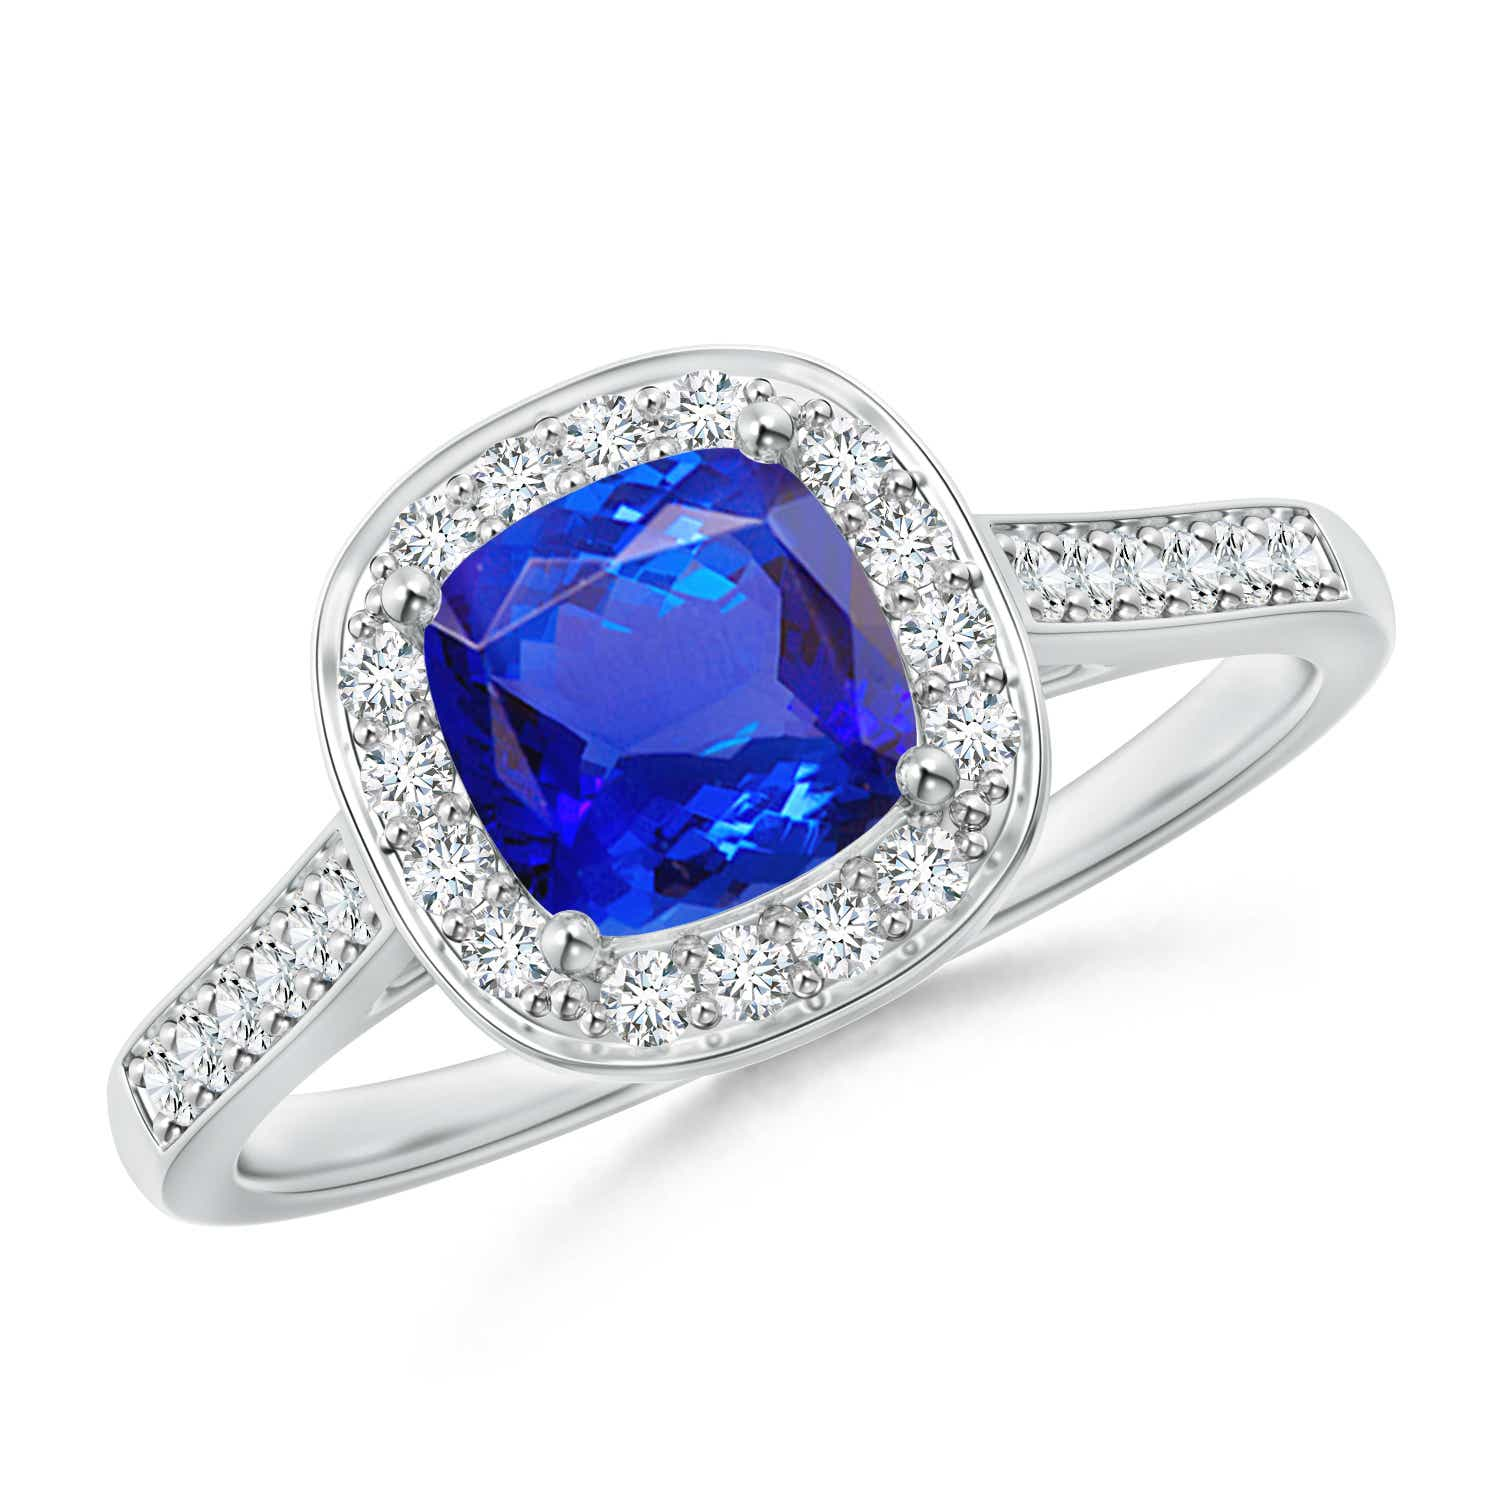 Angara Cushion Sapphire and Diamond Halo Ring in White Gold sVo3nMFY